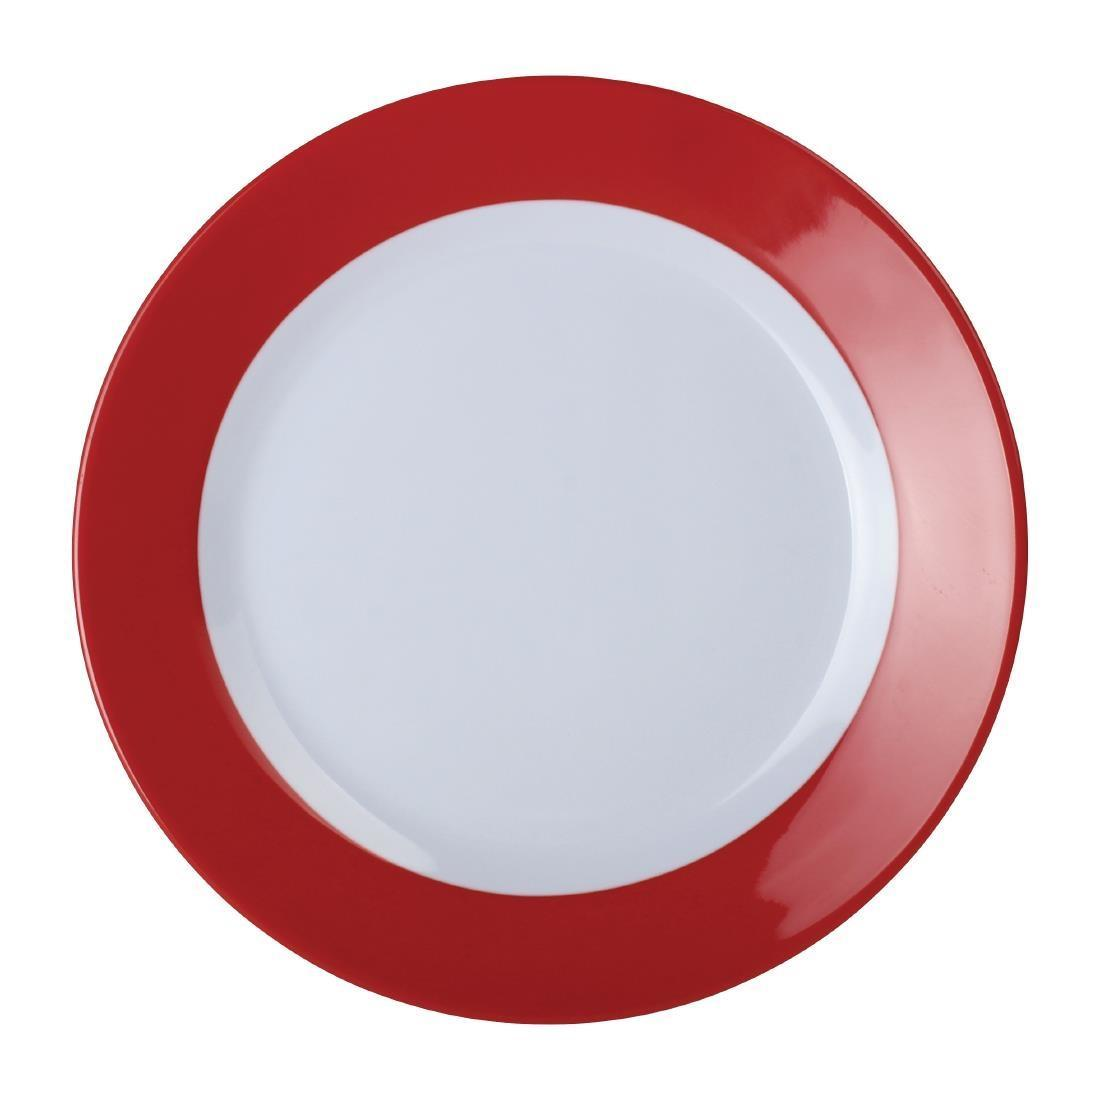 Kristallon Gala Colour Rim Melamine Plate Red 230mm - Case 6 - DE601